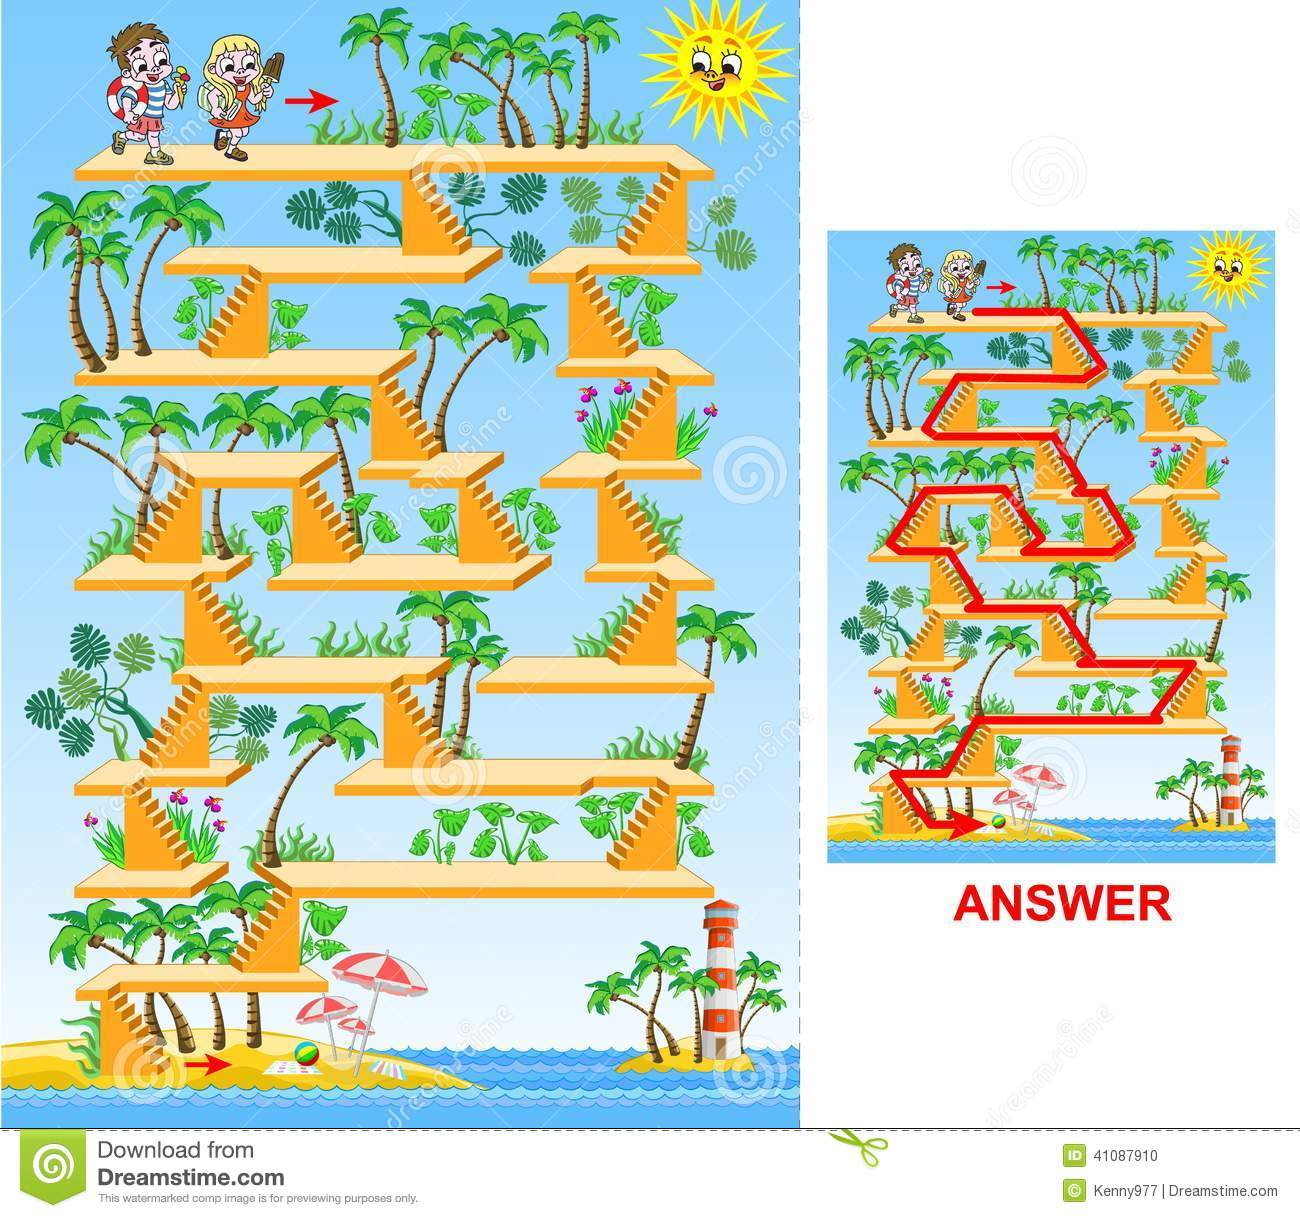 Frangipani spa flowers stock photo image 14654190 - Children Going To The Beach Maze Game For Kids Stock Vector Image